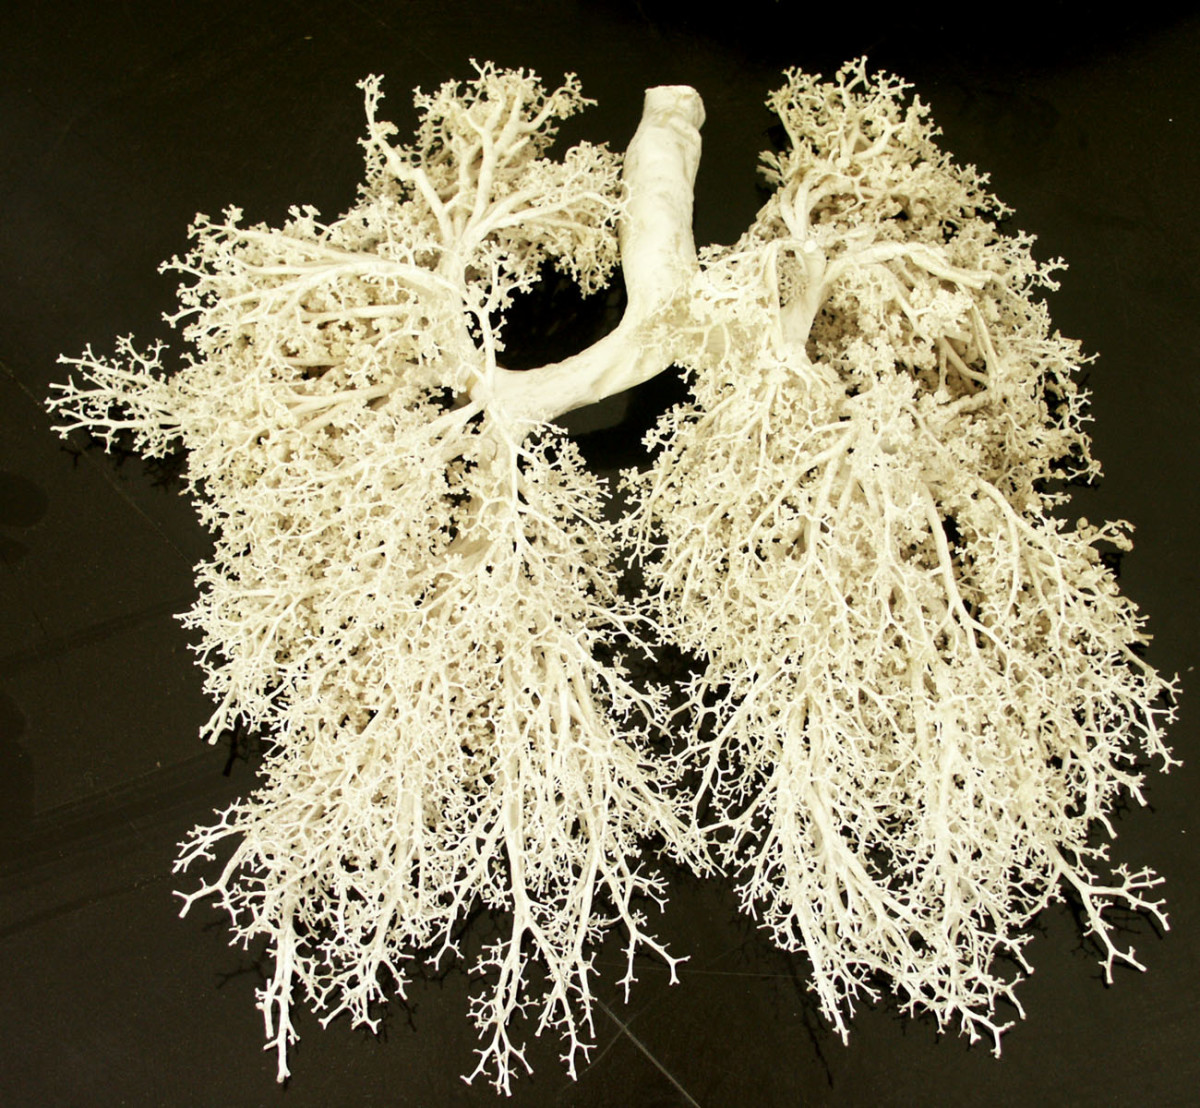 Plasticized human trachea, bronchi and bronchioles